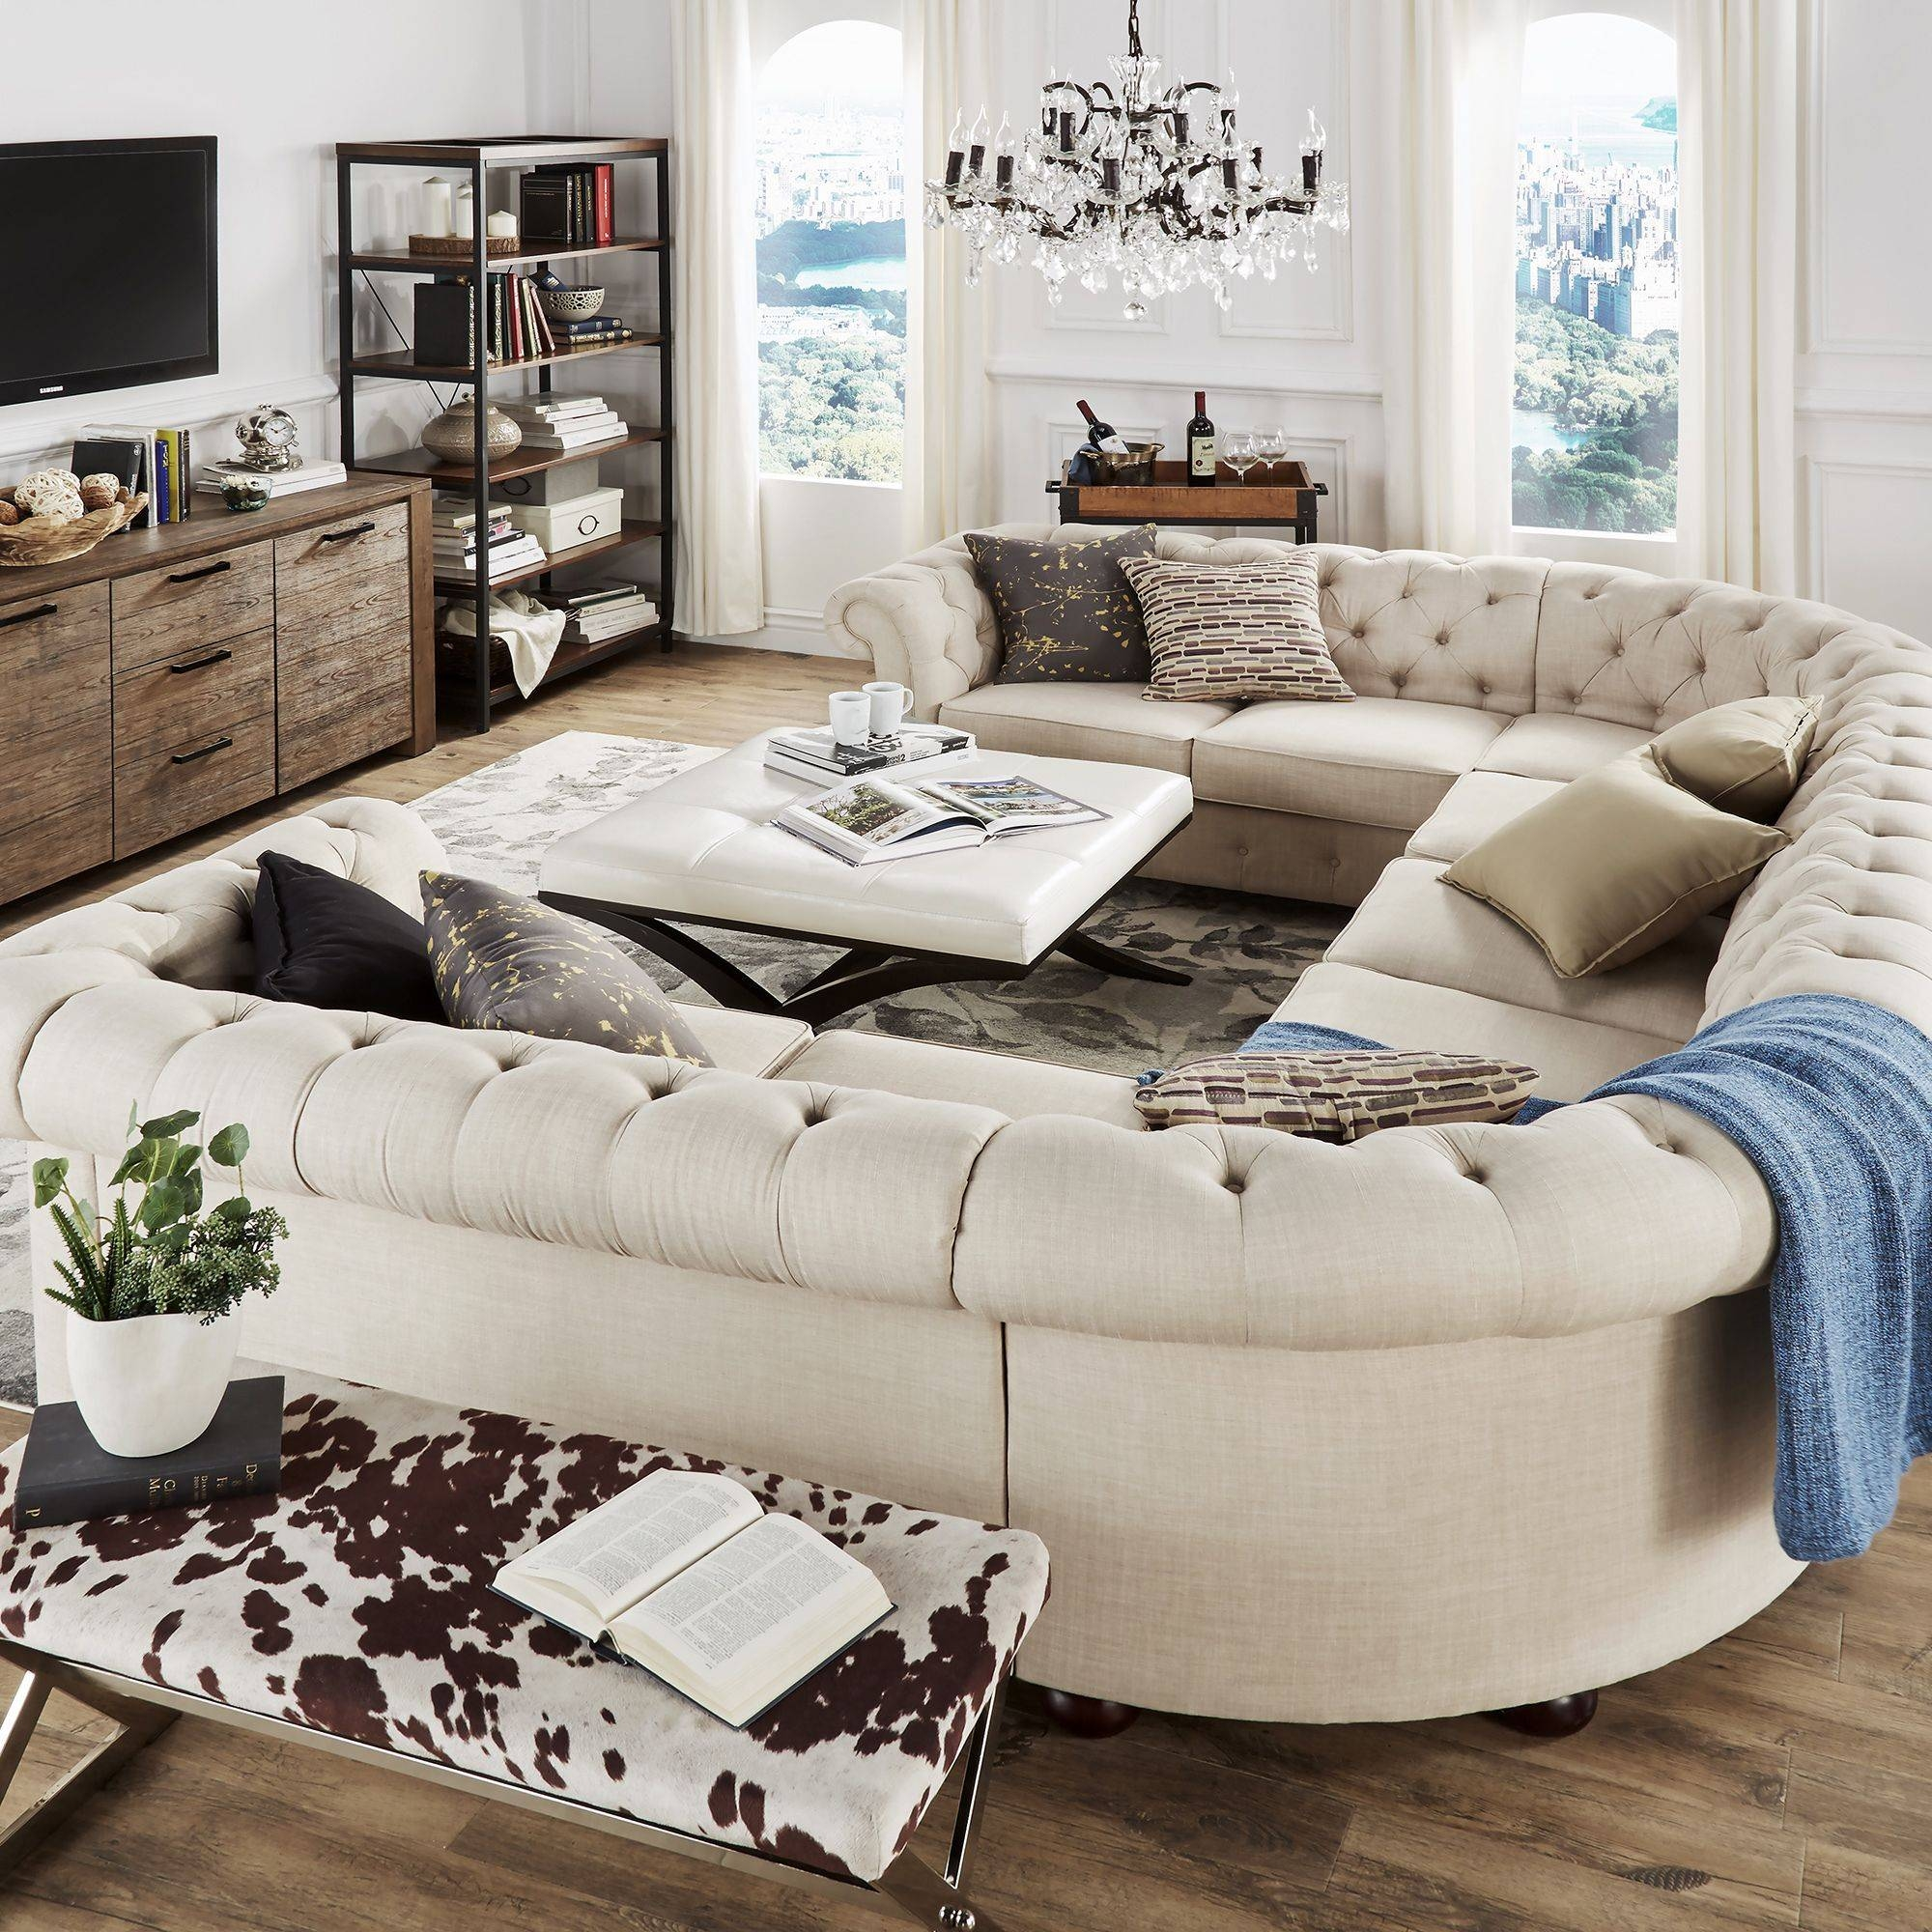 products linen comfy cloud loaf clever white in oyster so seated couch clo deep sofa